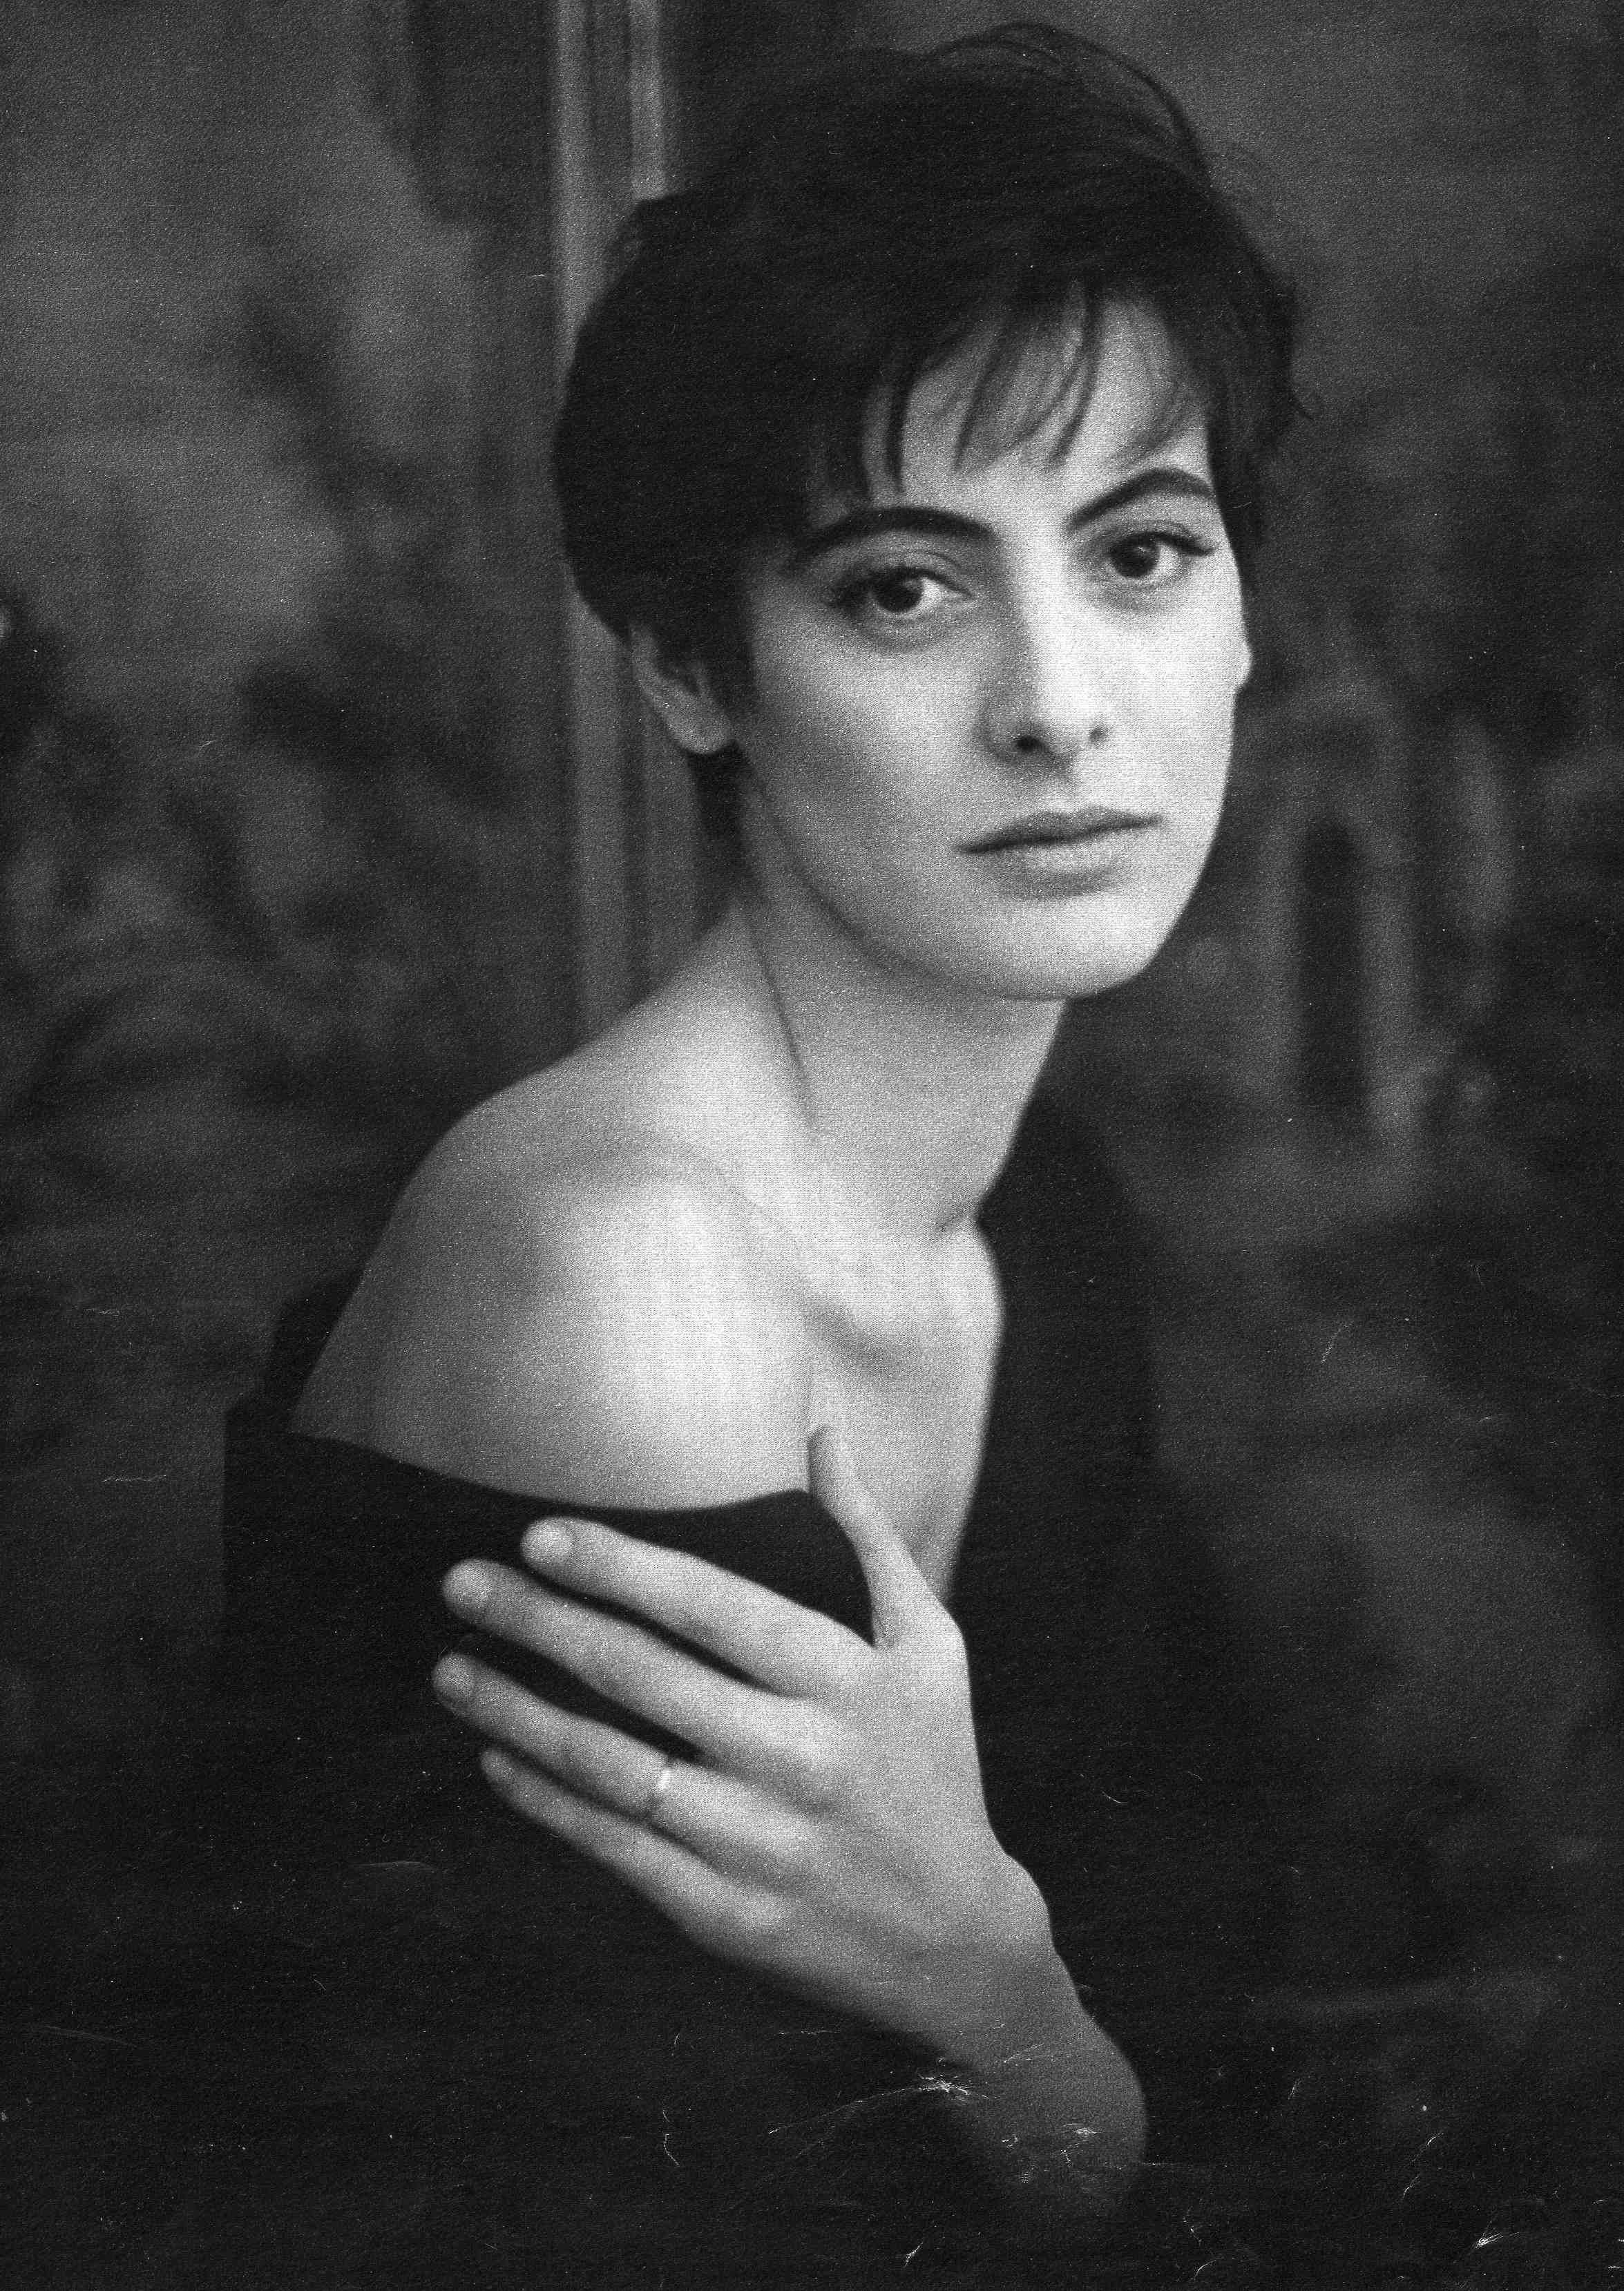 Inès de la Fressange (1957) - French model, aristocrat, fashion designer, and perfumer. Photo by Noelle Hoeppe